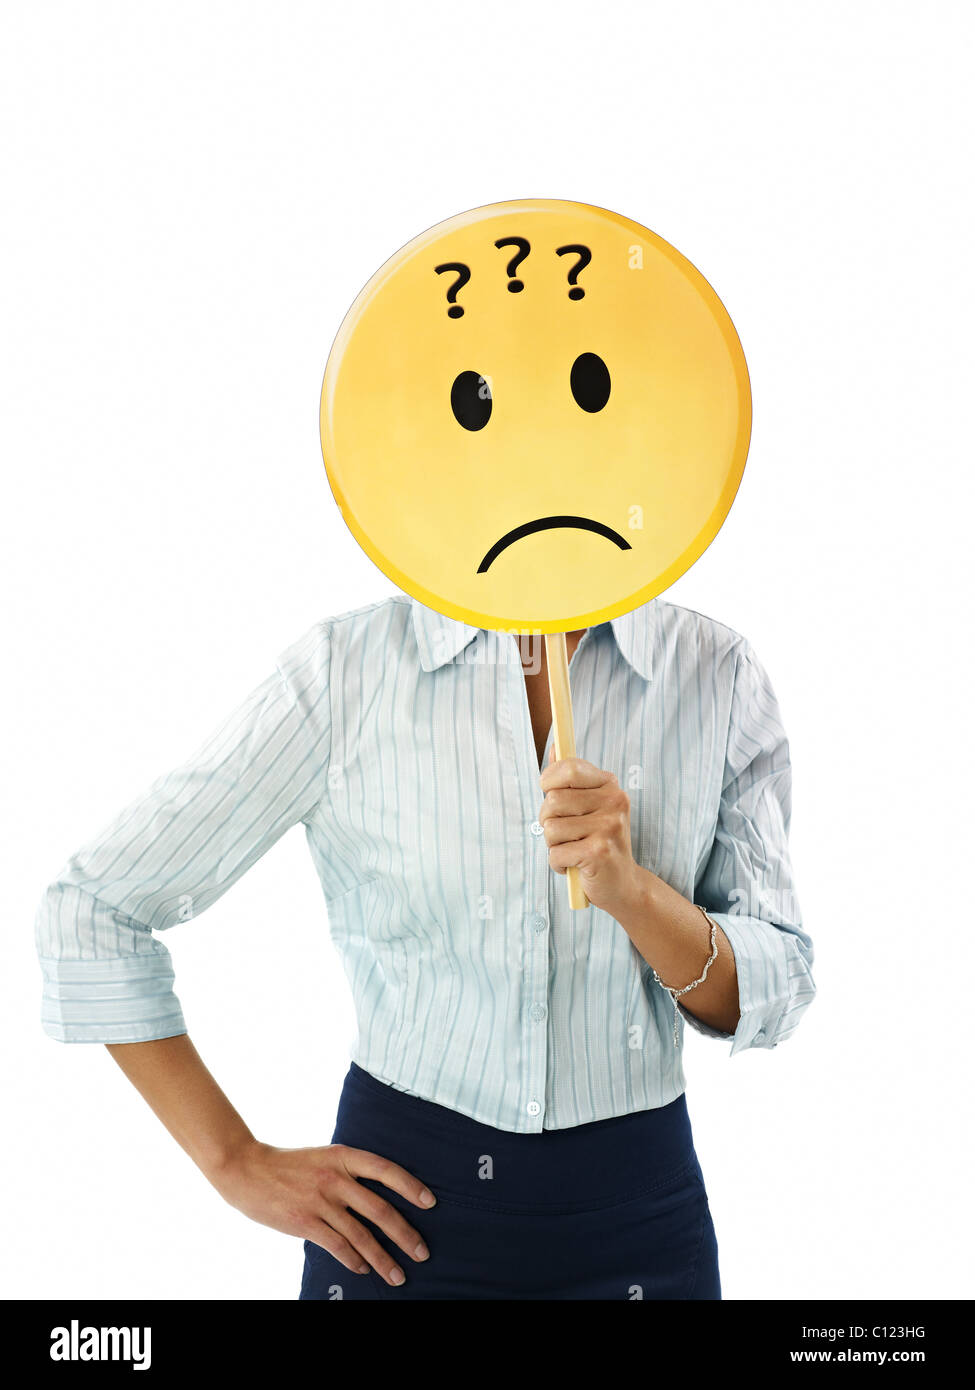 adult business woman holding emoticon with question marks on white background. Vertical shape, waist up - Stock Image